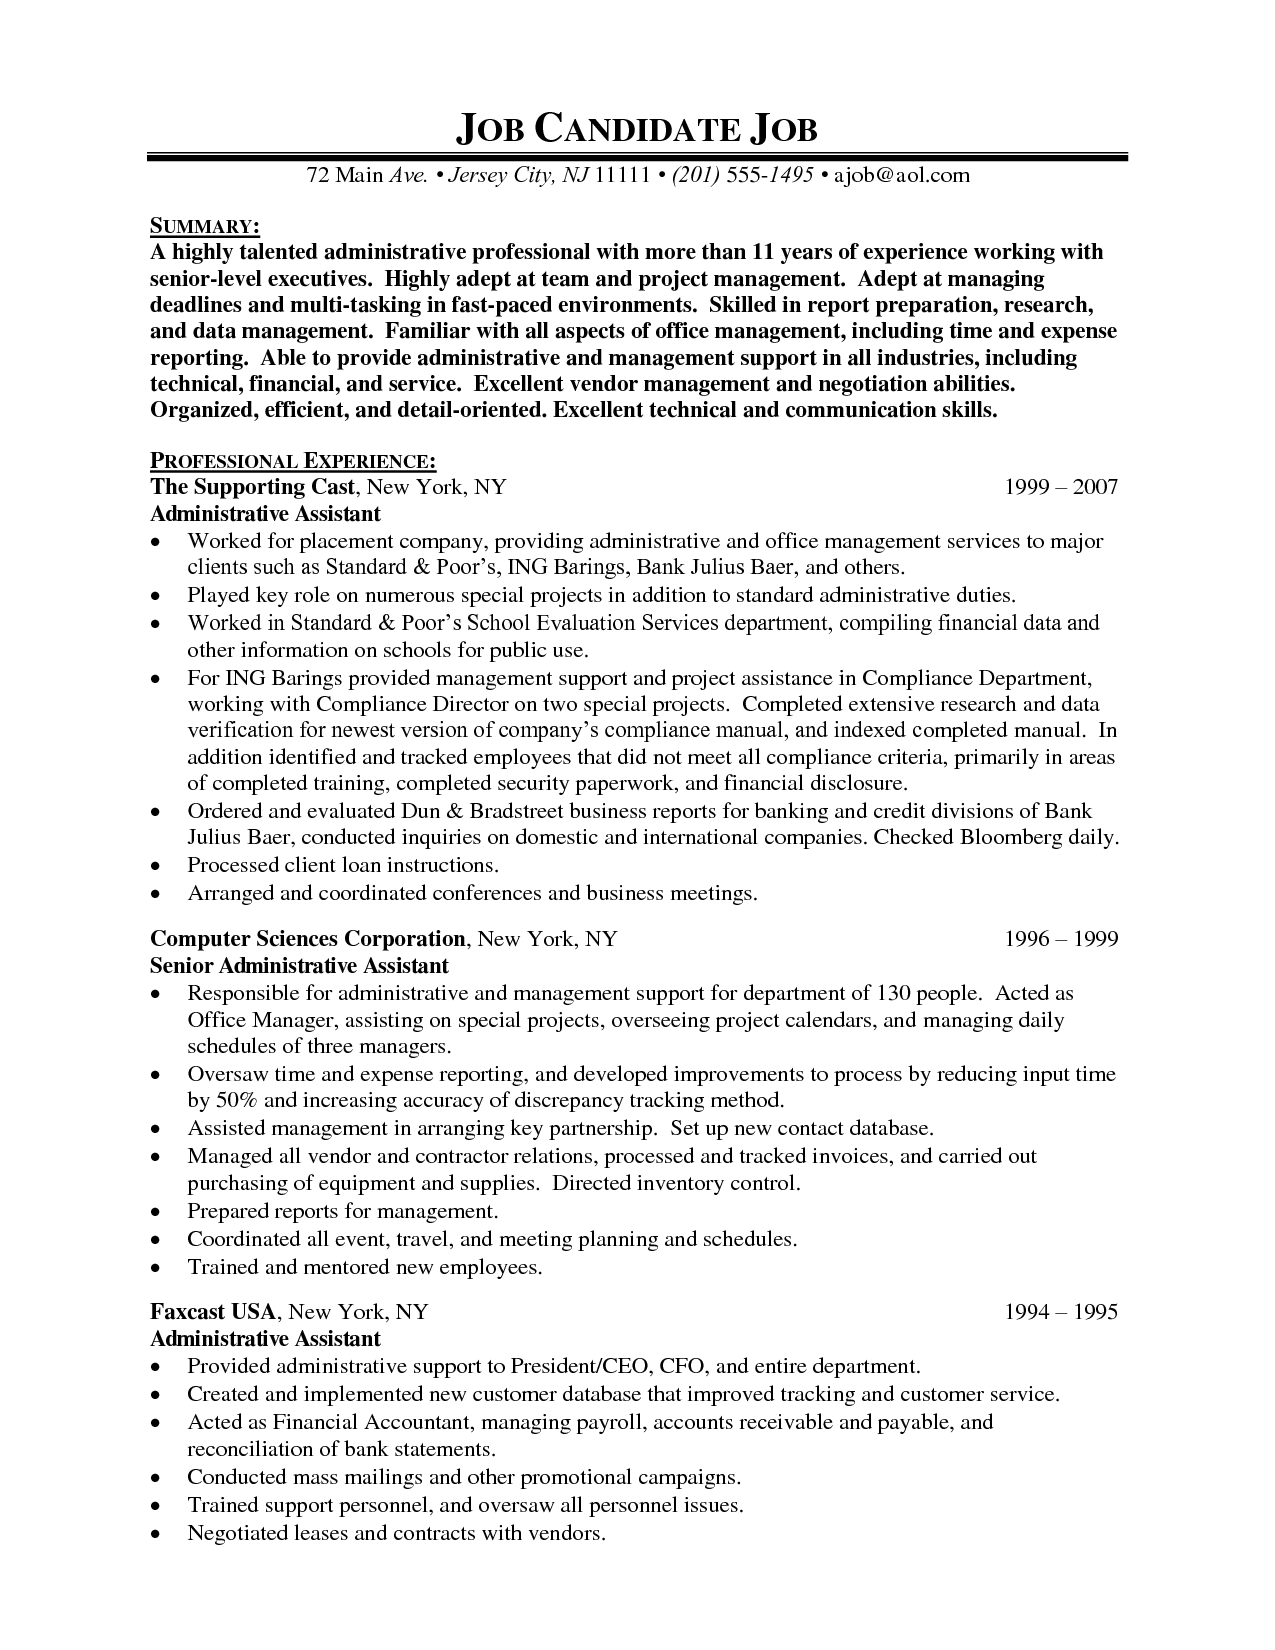 Senior Executive Assistant Resume (Sample) | Resume Samples